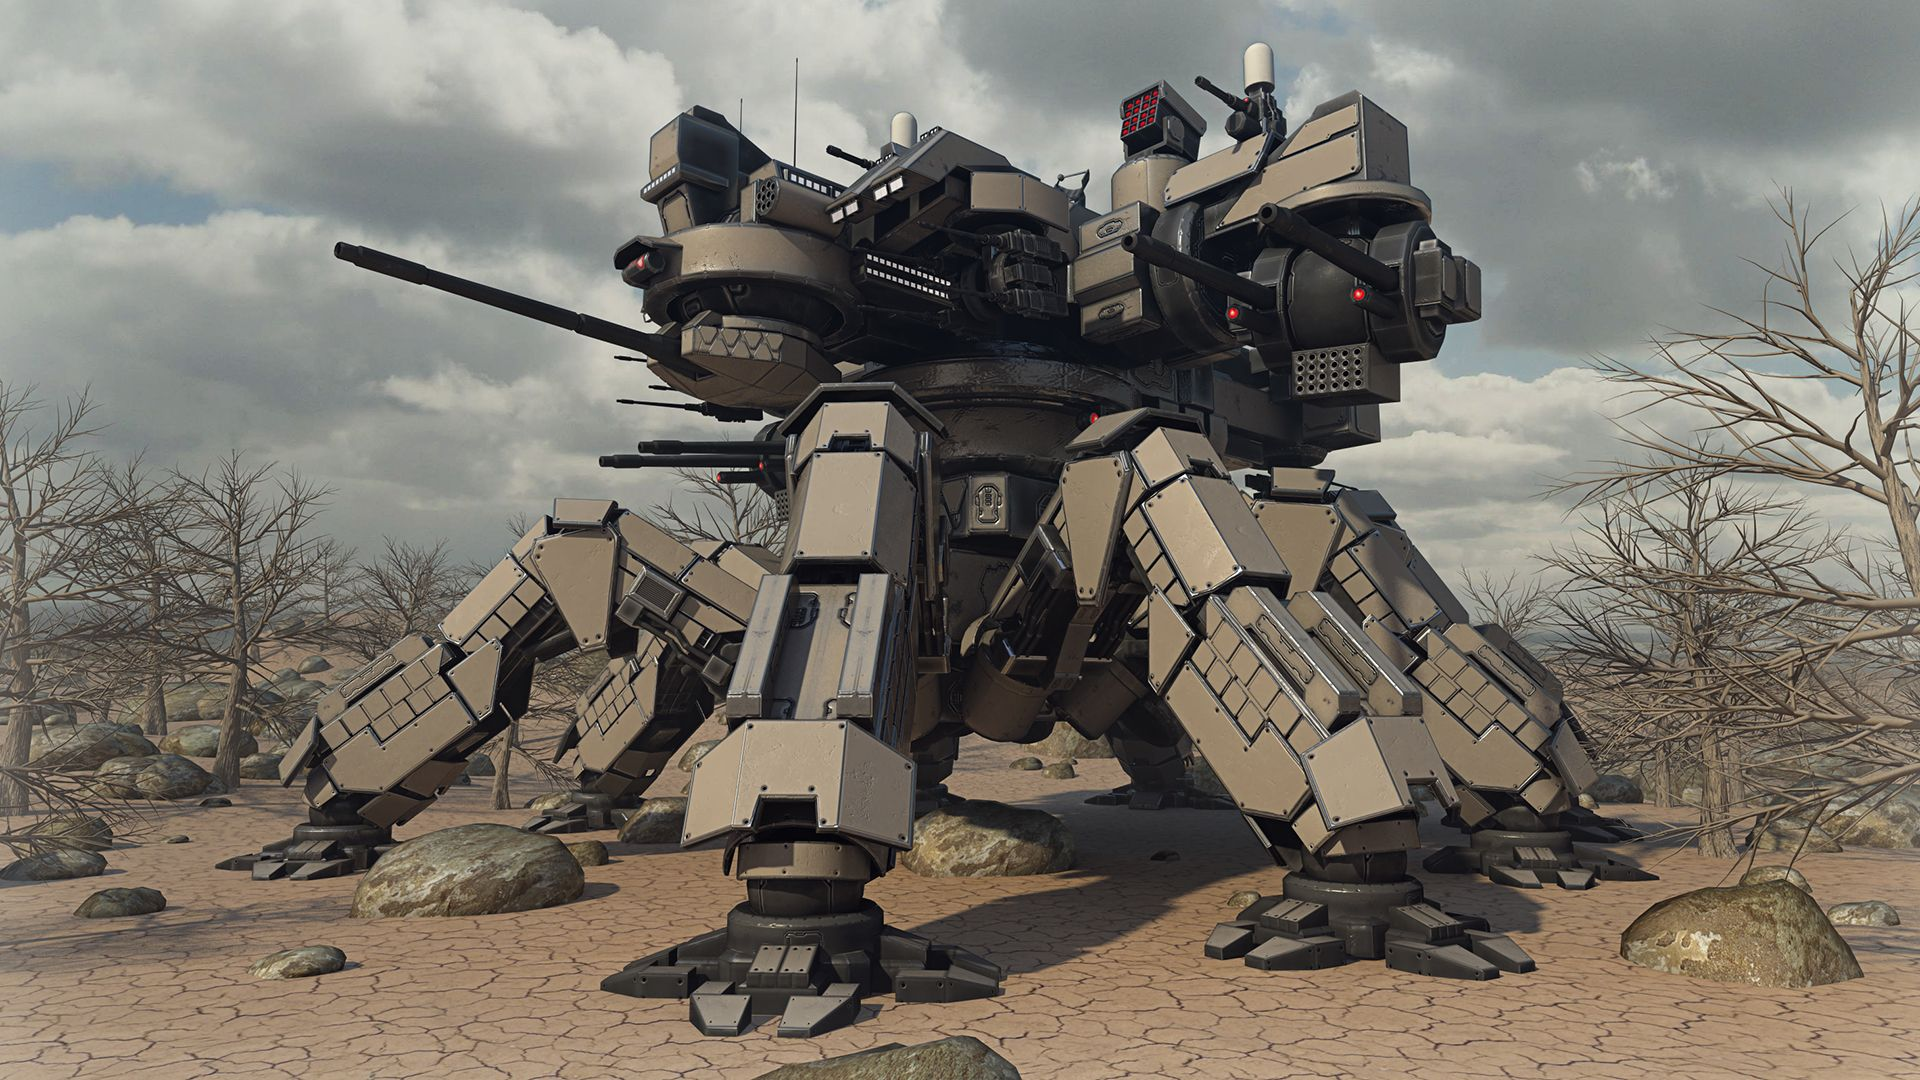 Desert Spider Mecha Not A Mod Unit Just For Fun Image Revamp Expansion Mod Rve Mod For Supreme Commander 2 Mod Db Mech Mecha Concept Art